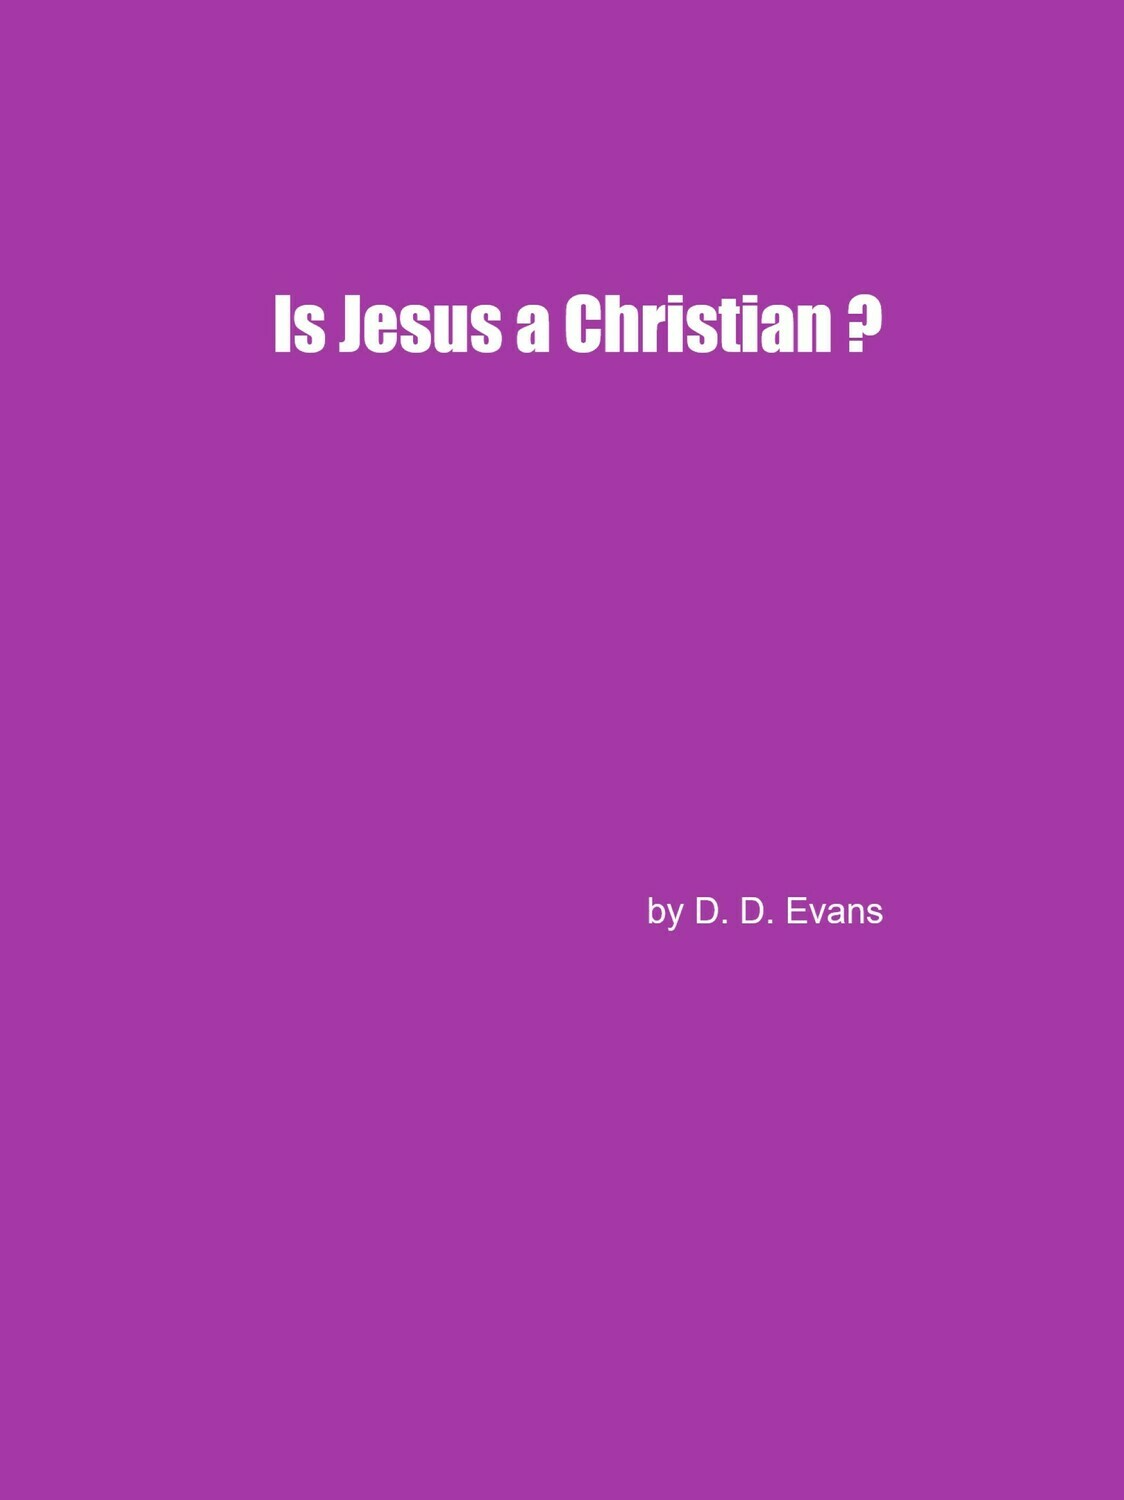 Is Jesus a Christian?